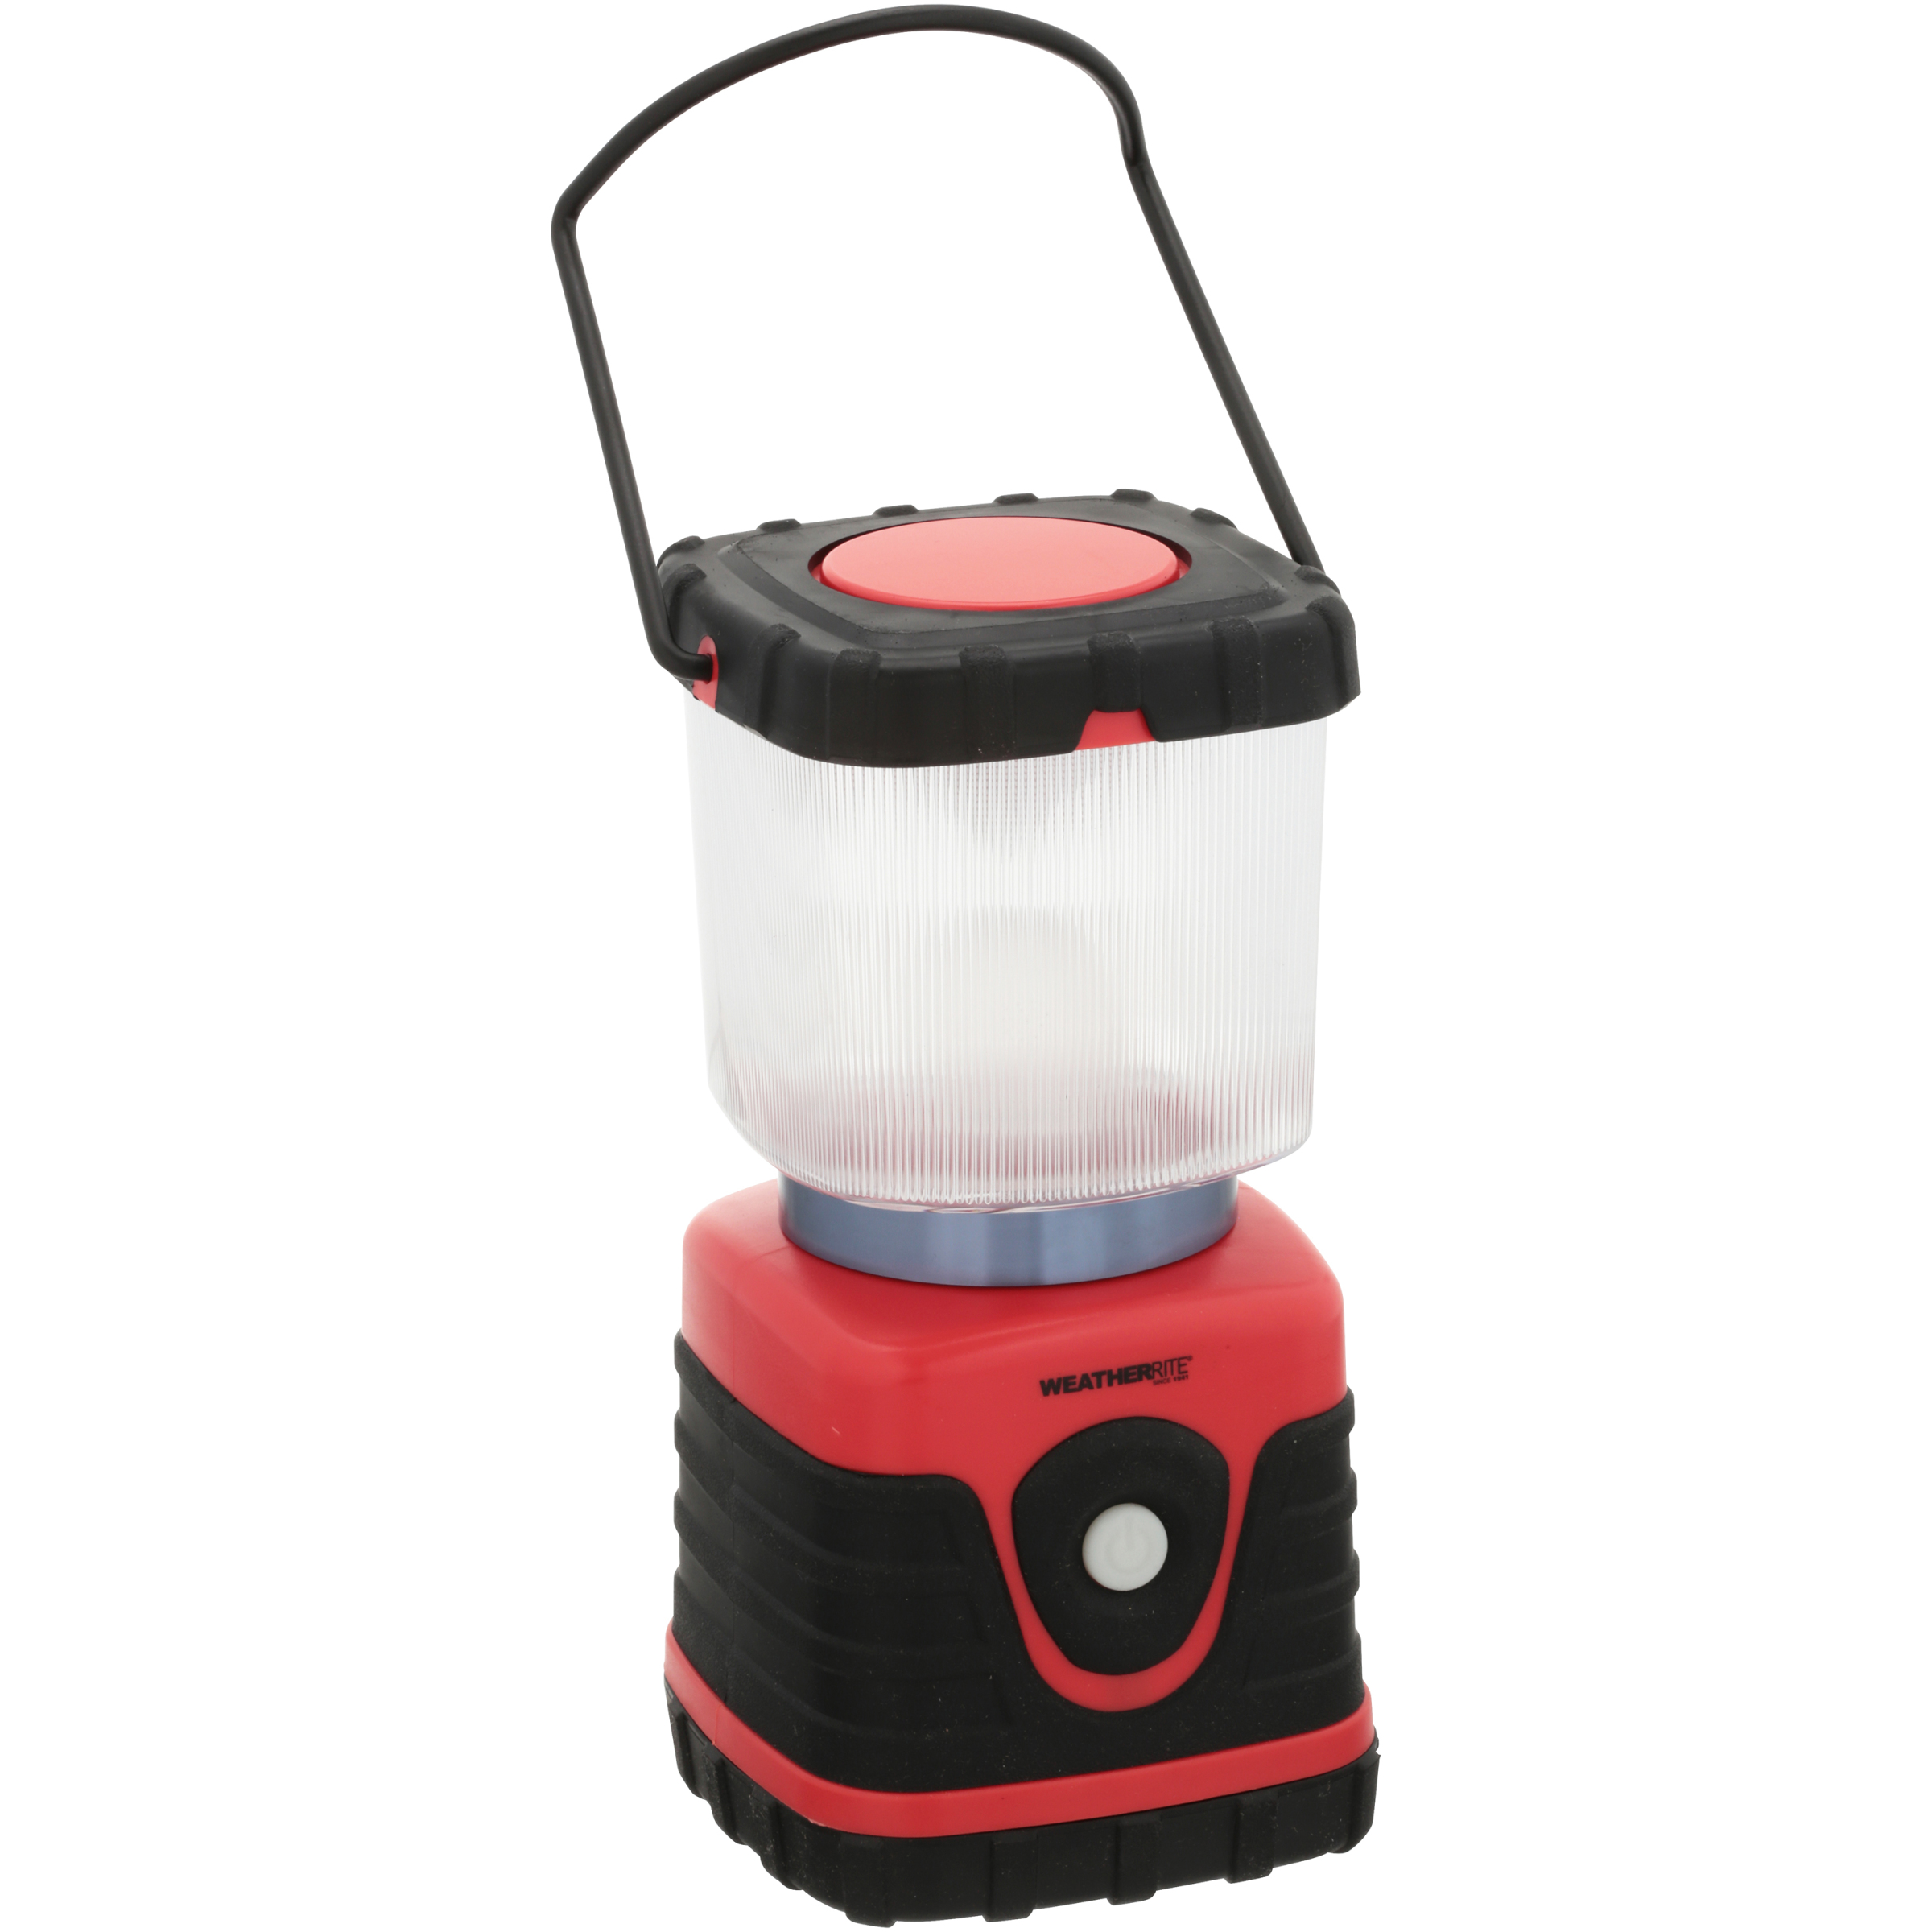 Weatherrite® LED High-Powered 600 Lumen Lantern